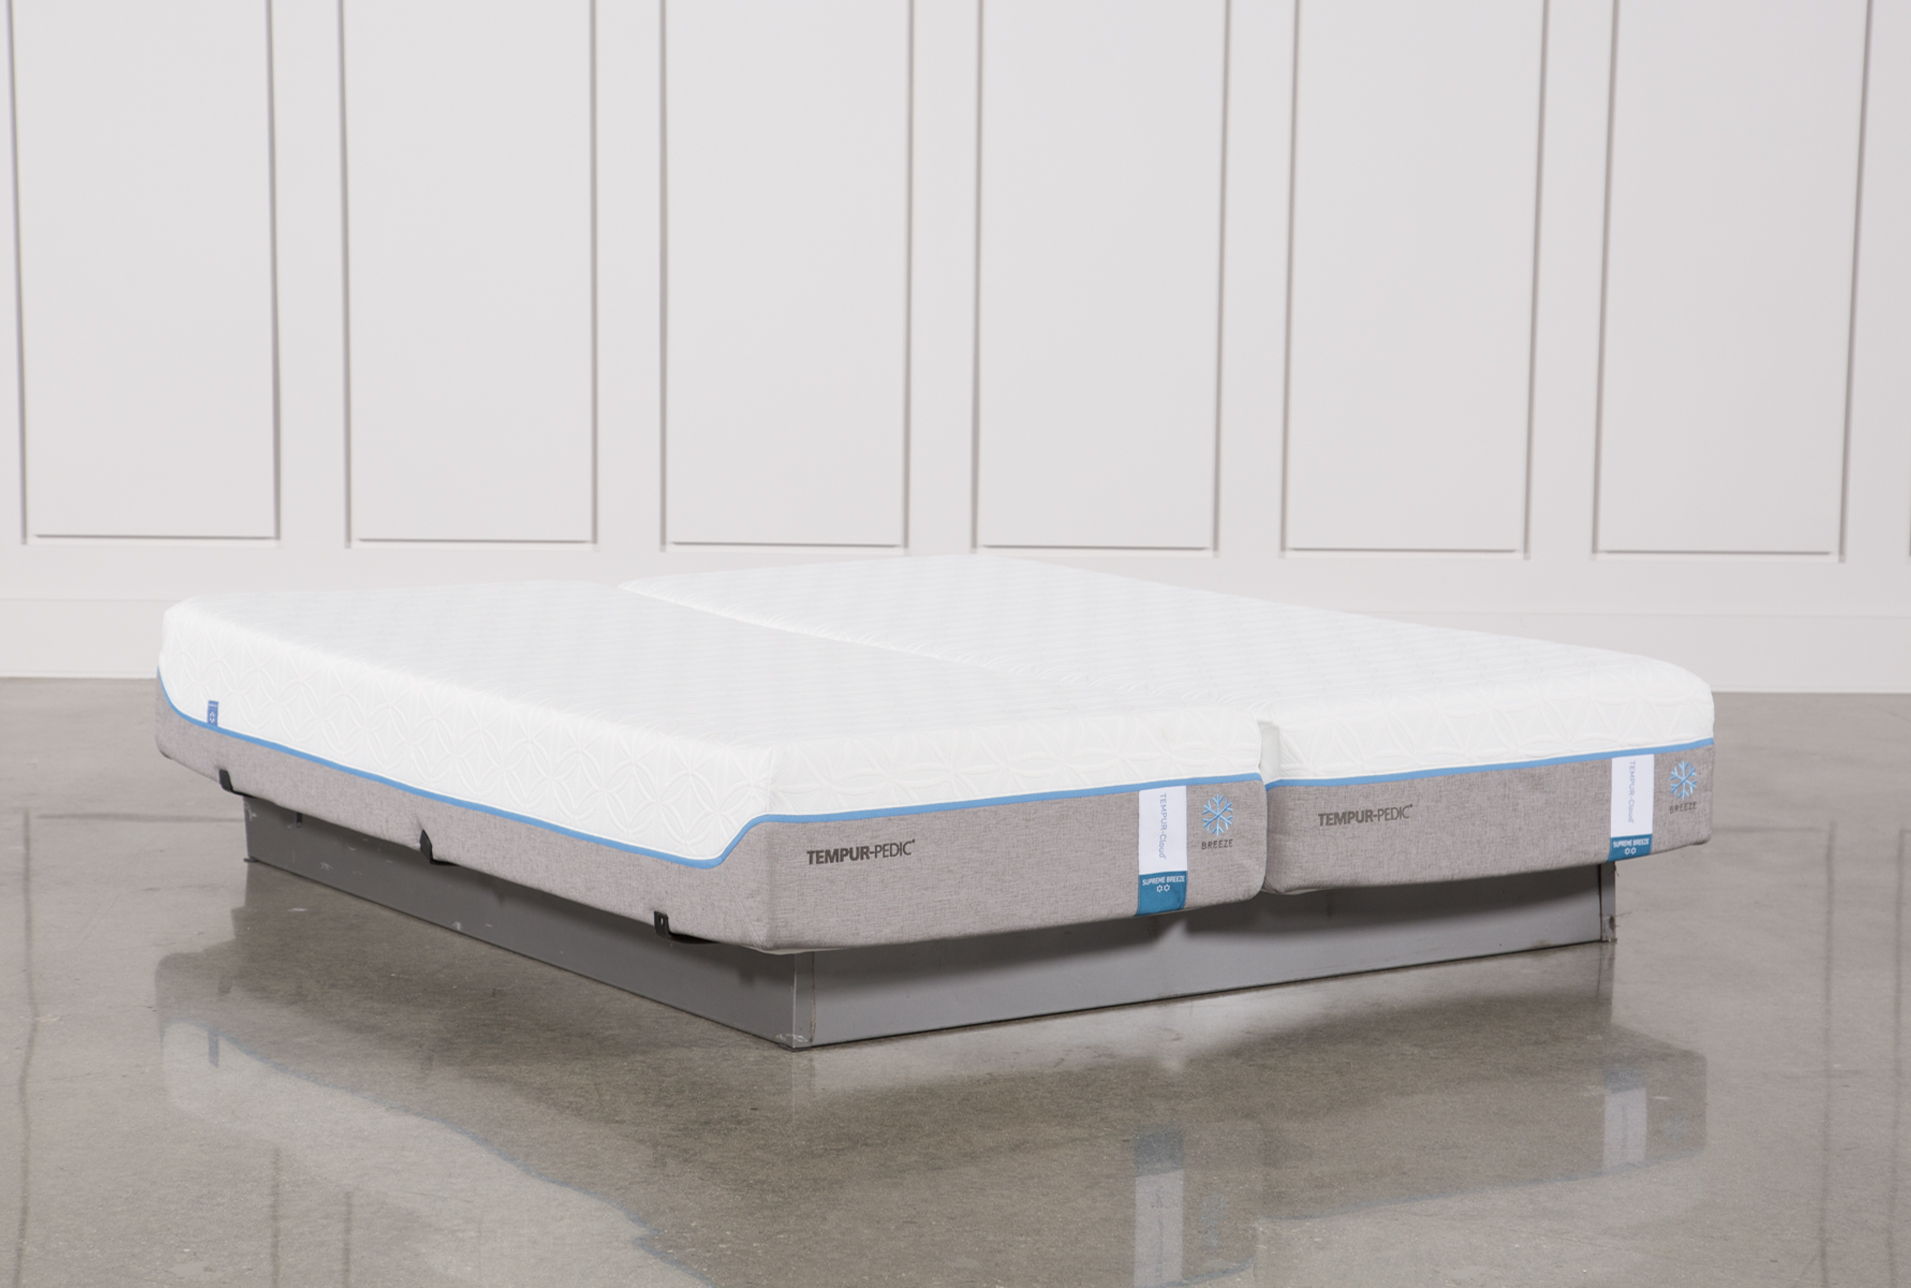 Tempur-Pedic Cloud Supreme Breeze 2.0 Cal King Split Mattress Set (Qty: 1)  has been successfully added to your Cart.